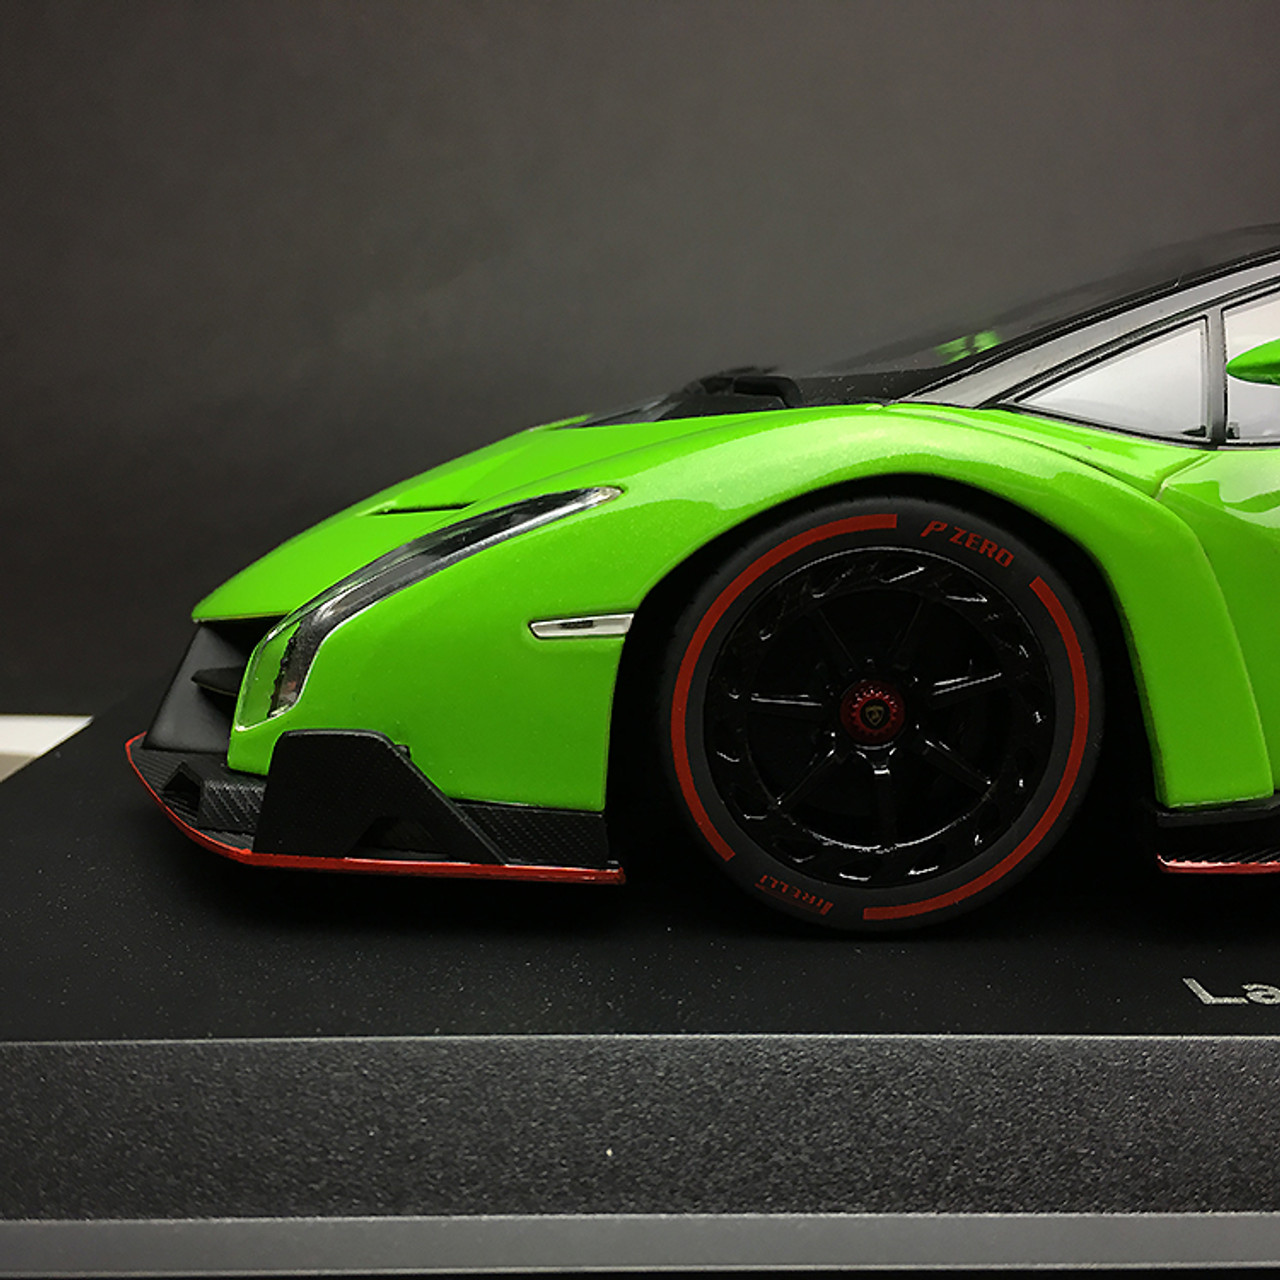 Contemporary Manufacture Green Red Line Gift Car Model Kyosho Lamborghini Veneno Roadster 1 18 Toys Hobbies